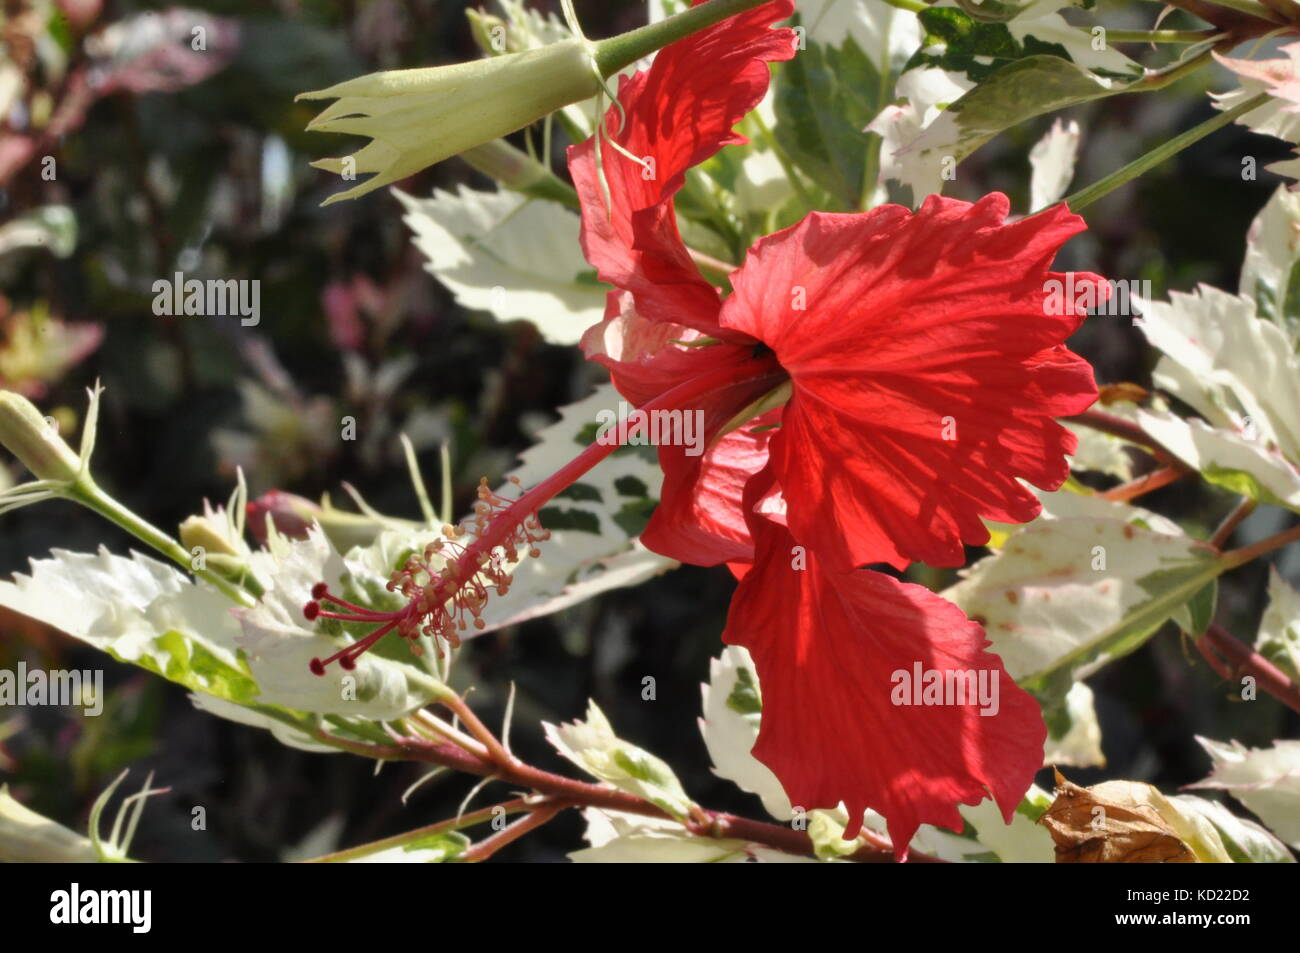 Variegated Hibiscus Stock Photos Variegated Hibiscus Stock Images